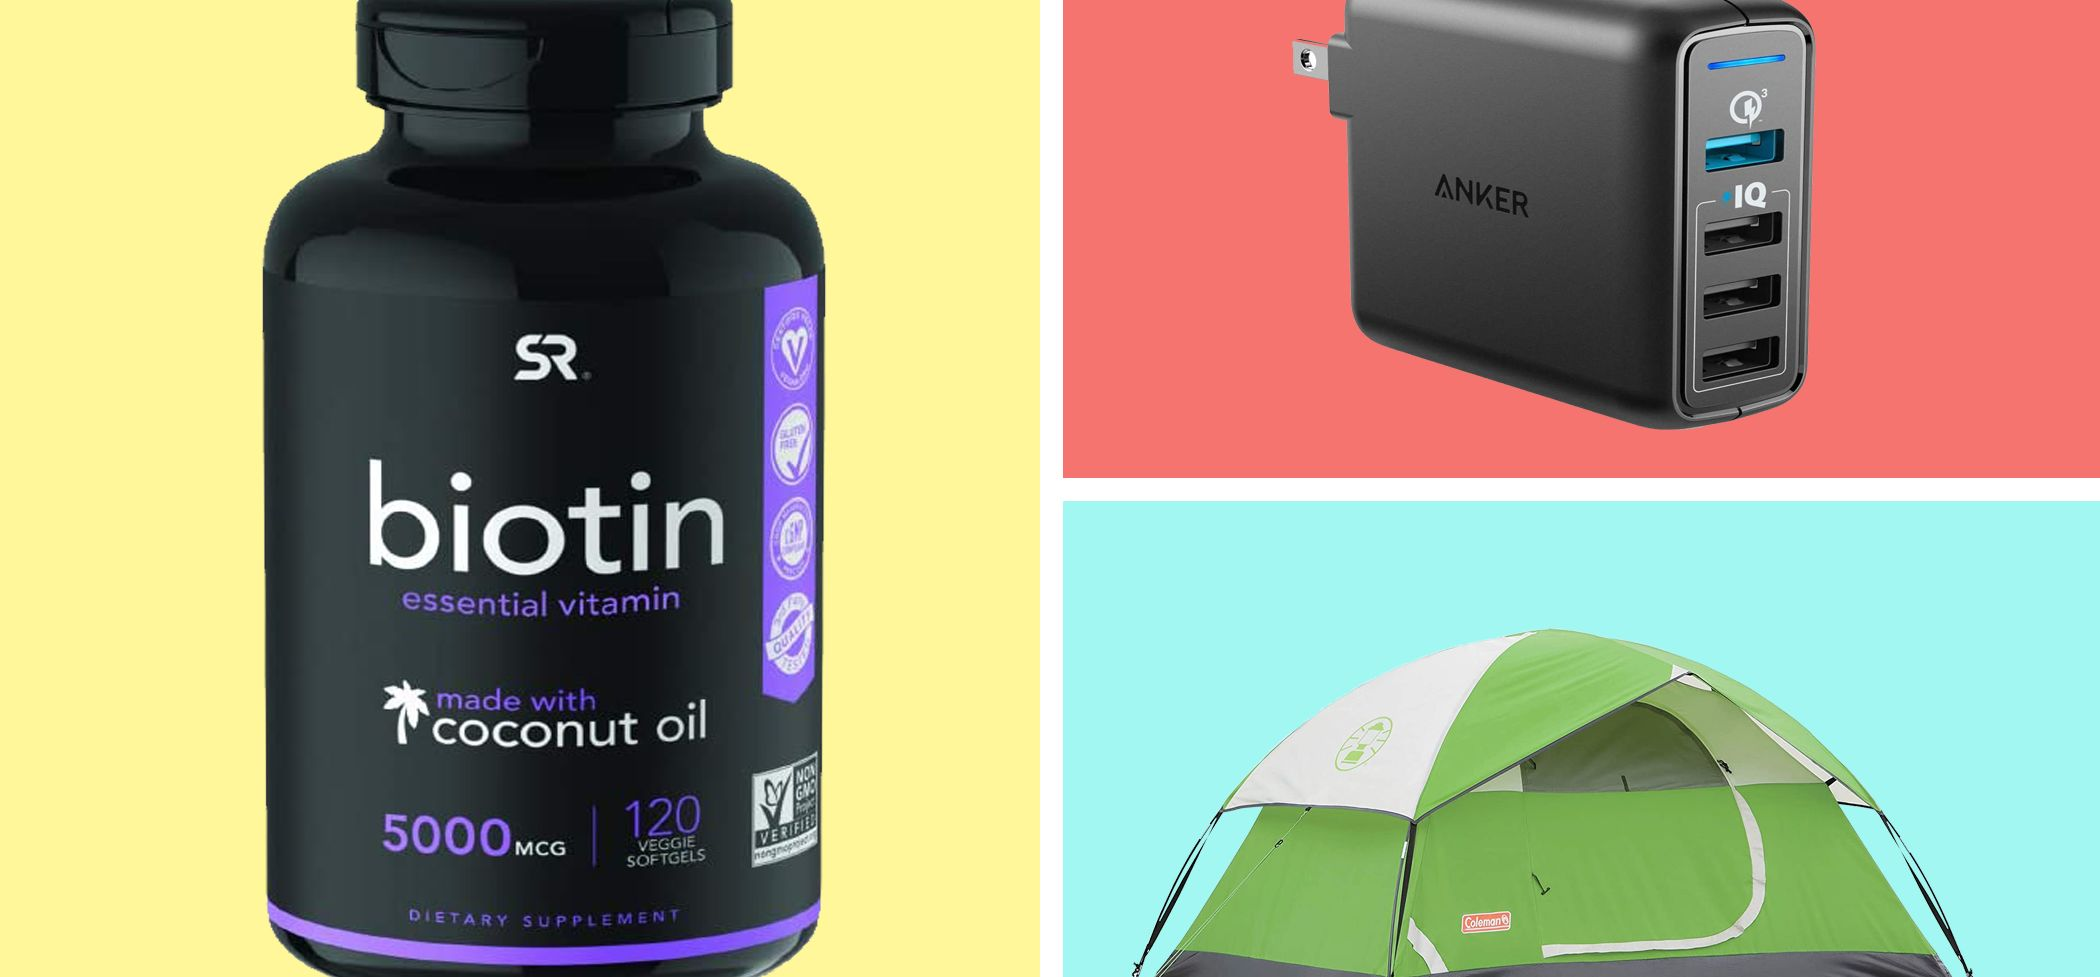 Wednesday's Best Amazon Deals Include Memory Foam Pillows, Juicers, and Tents